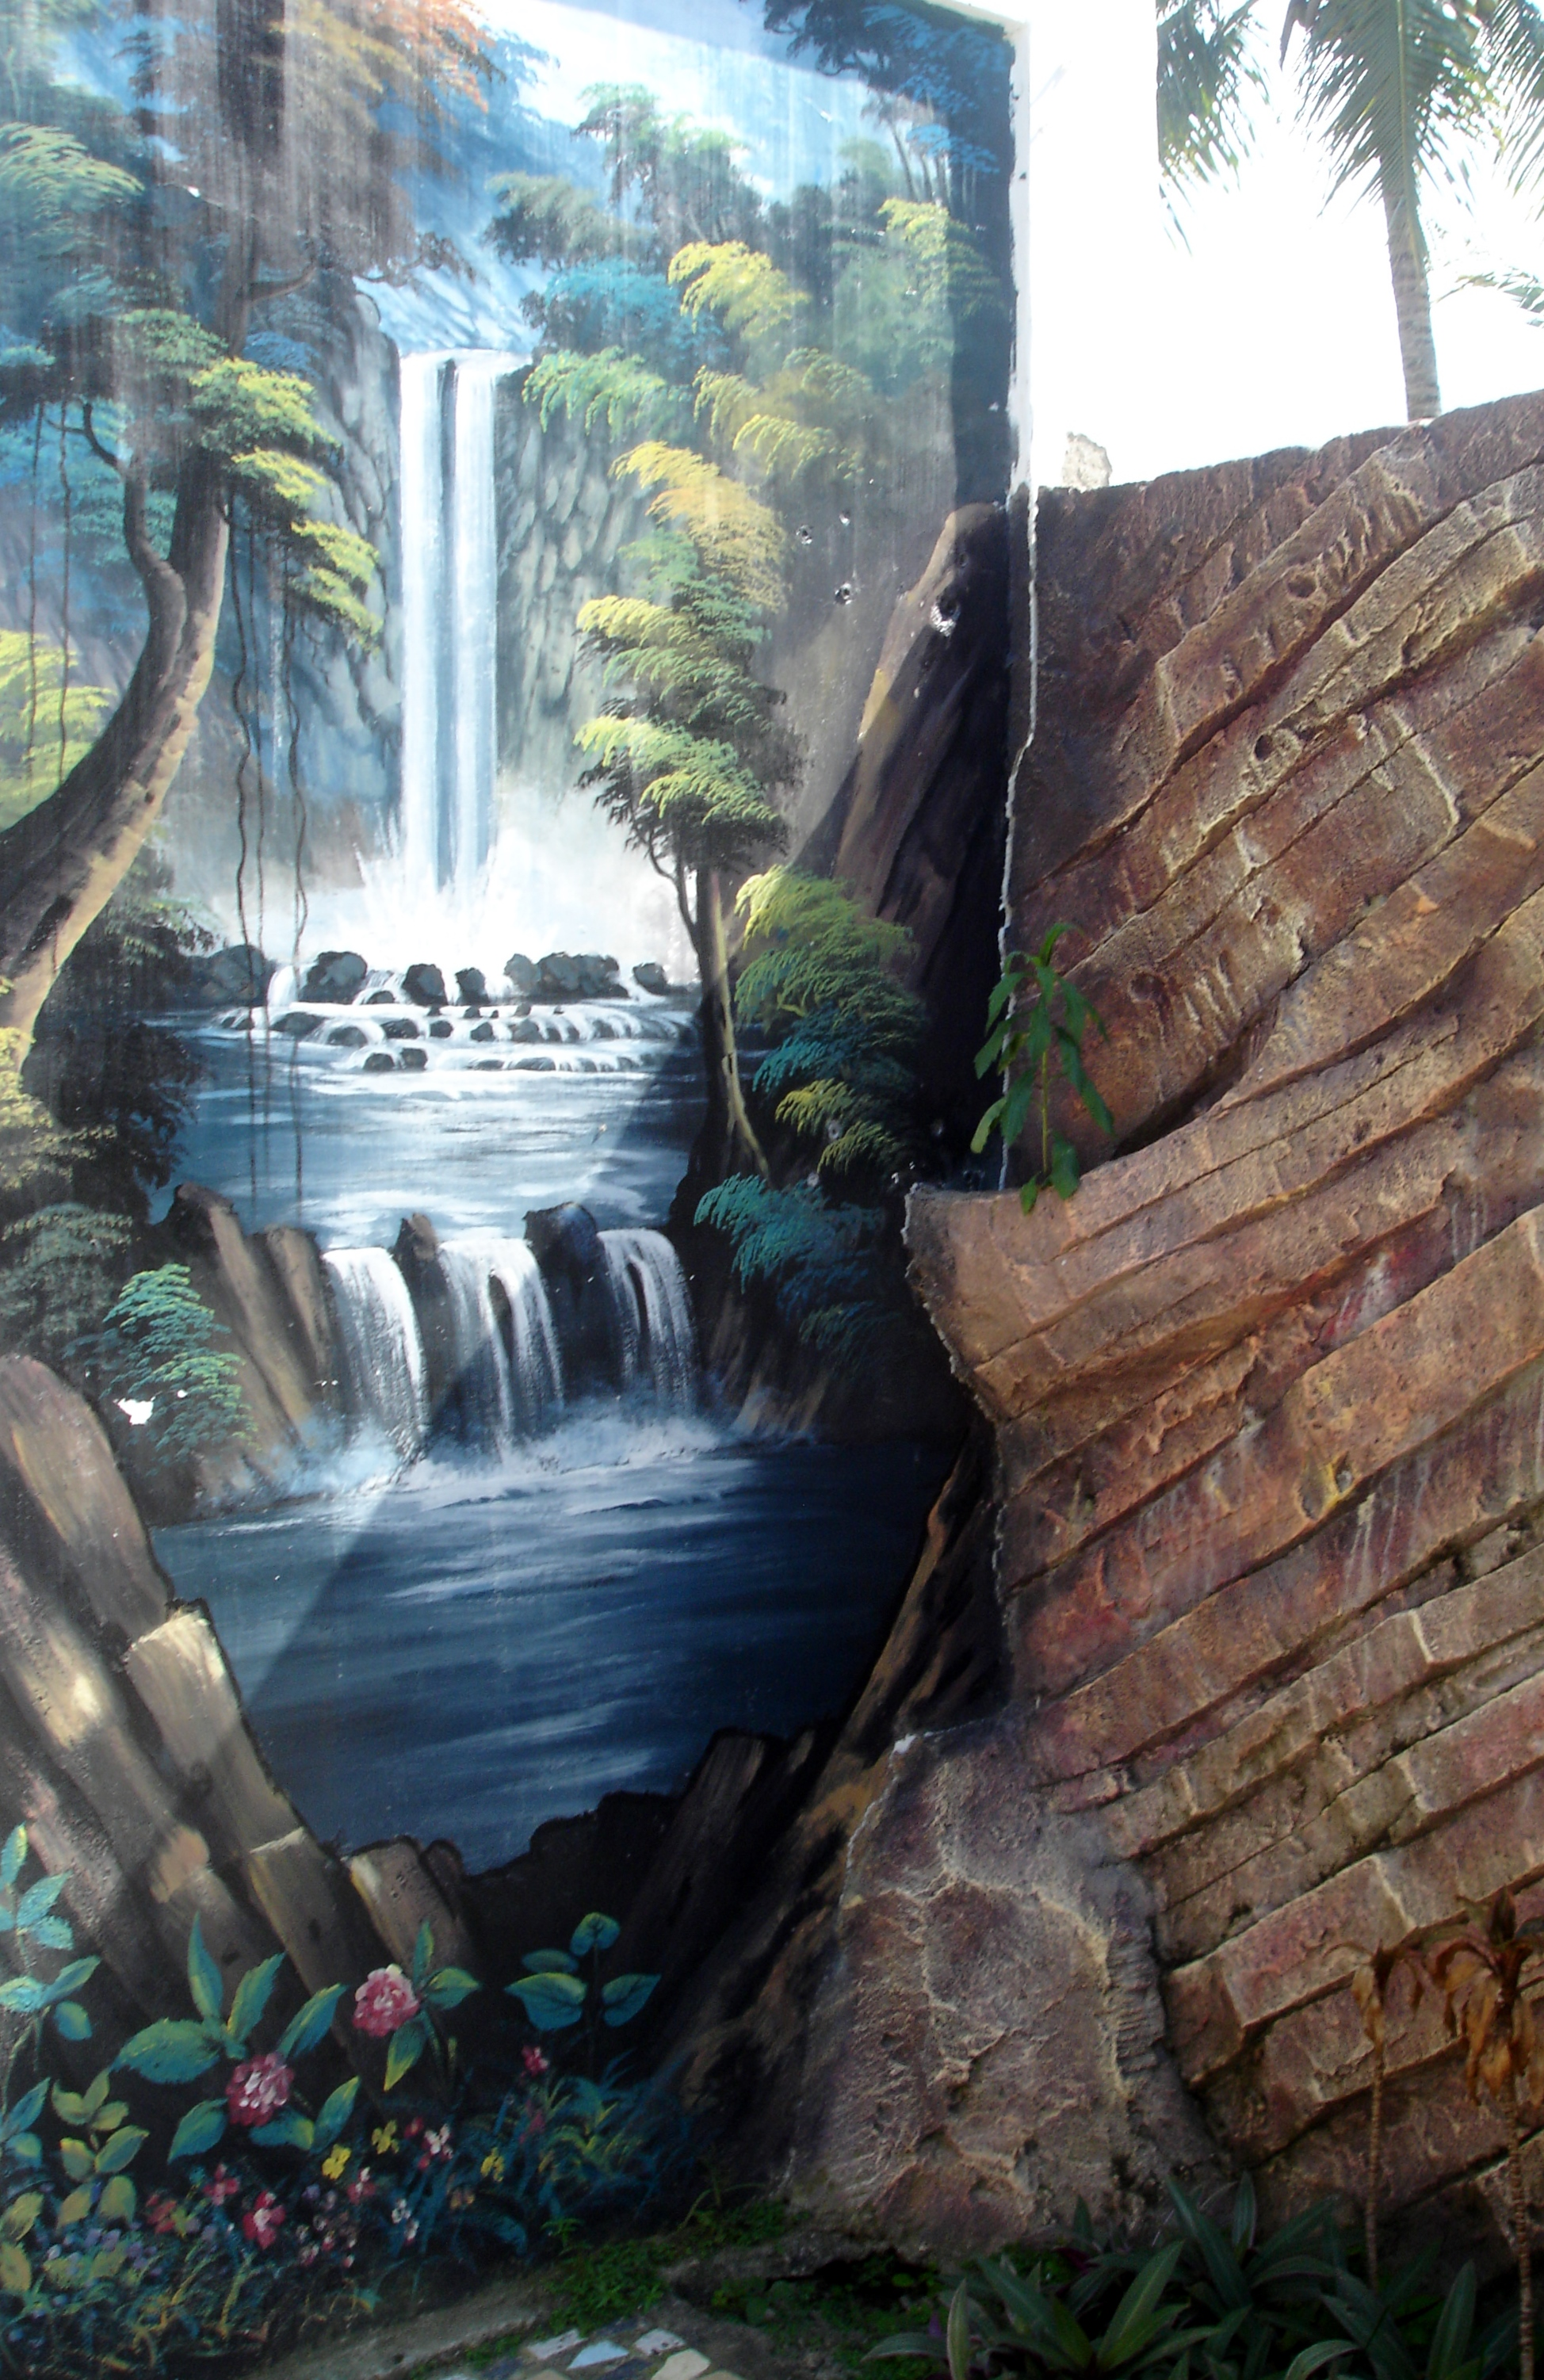 waterfall painting on wall murals pinterest waterfall painting on wall